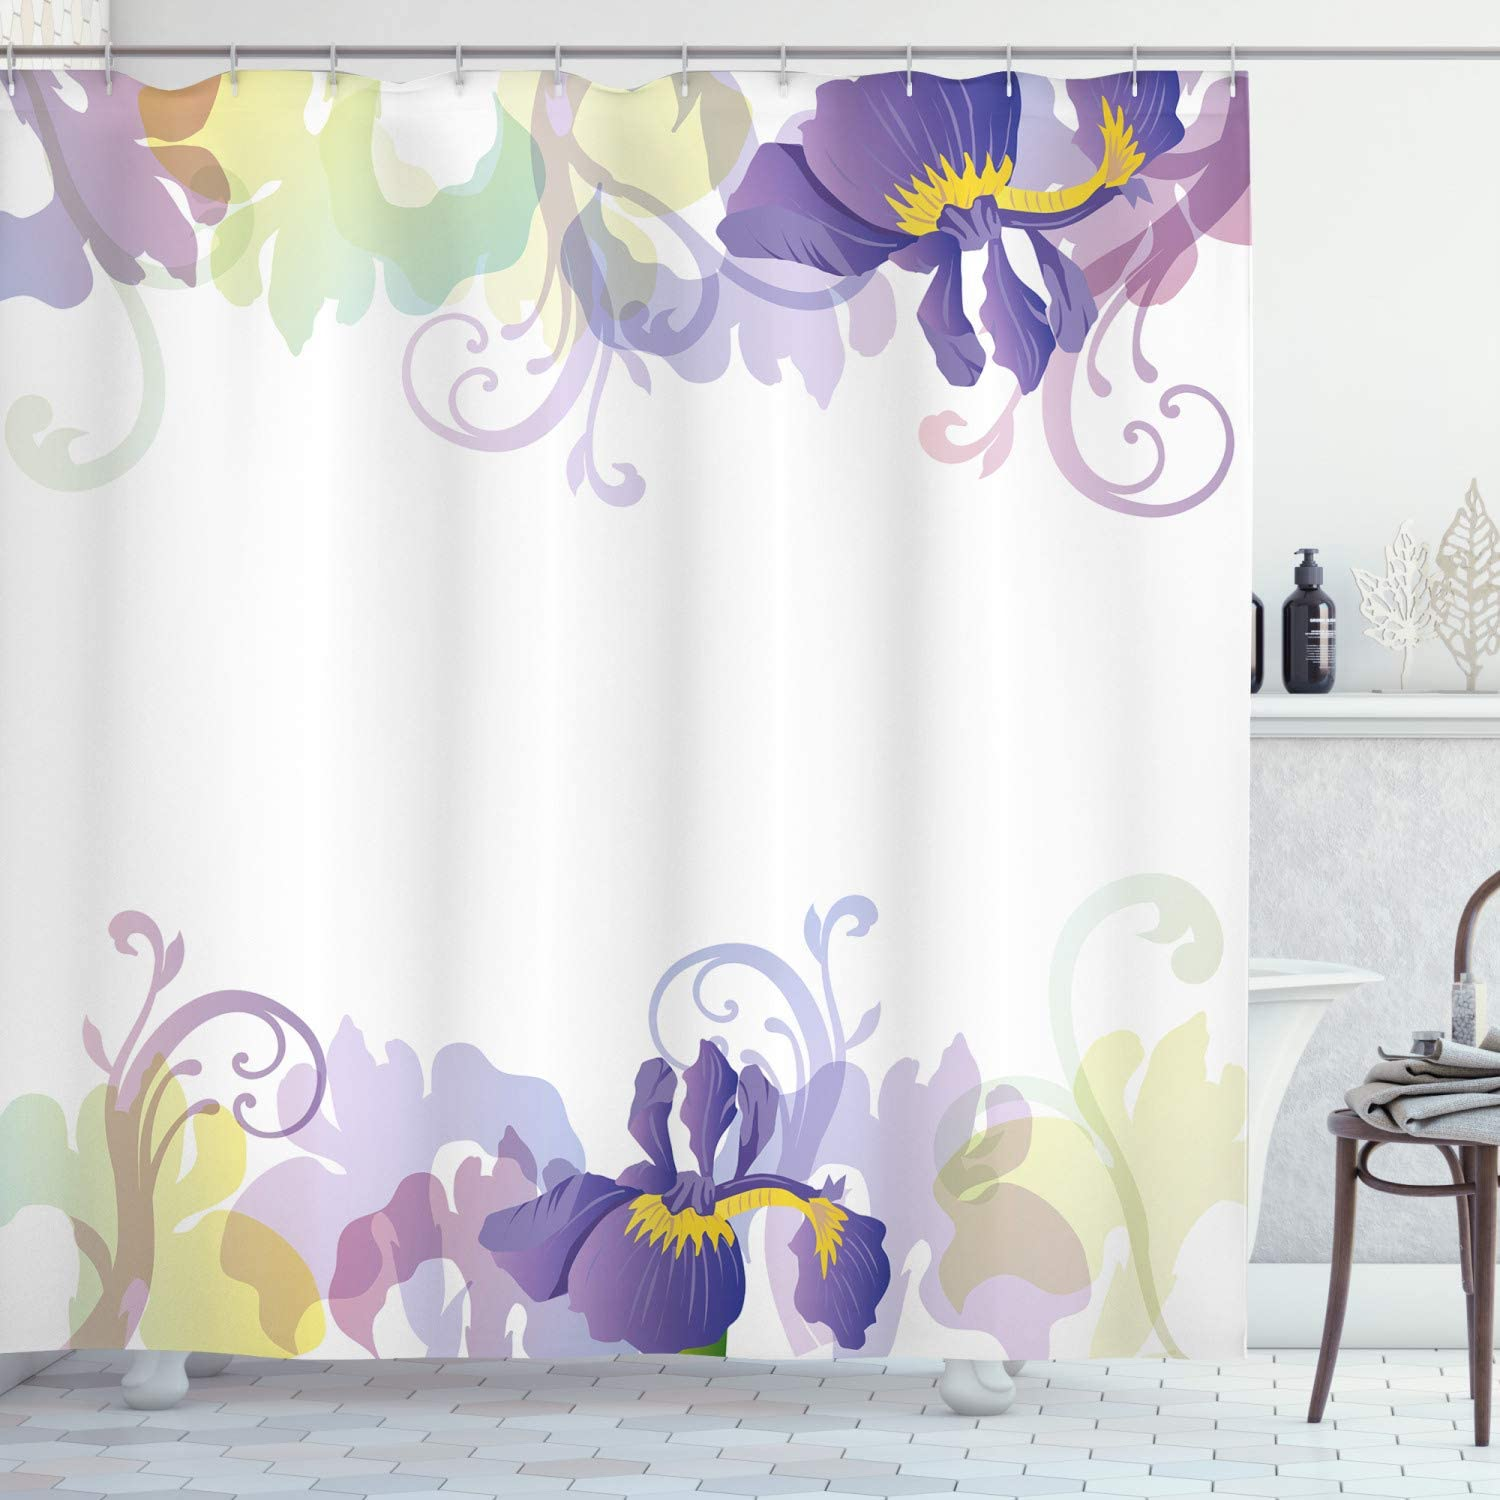 Ambesonne Floral Shower Curtain, Classic Petals Pastel Toned Seasonal Florets Blooming Flowers Spring Print, Cloth Fabric Bathroom Decor Set with Hooks, 70